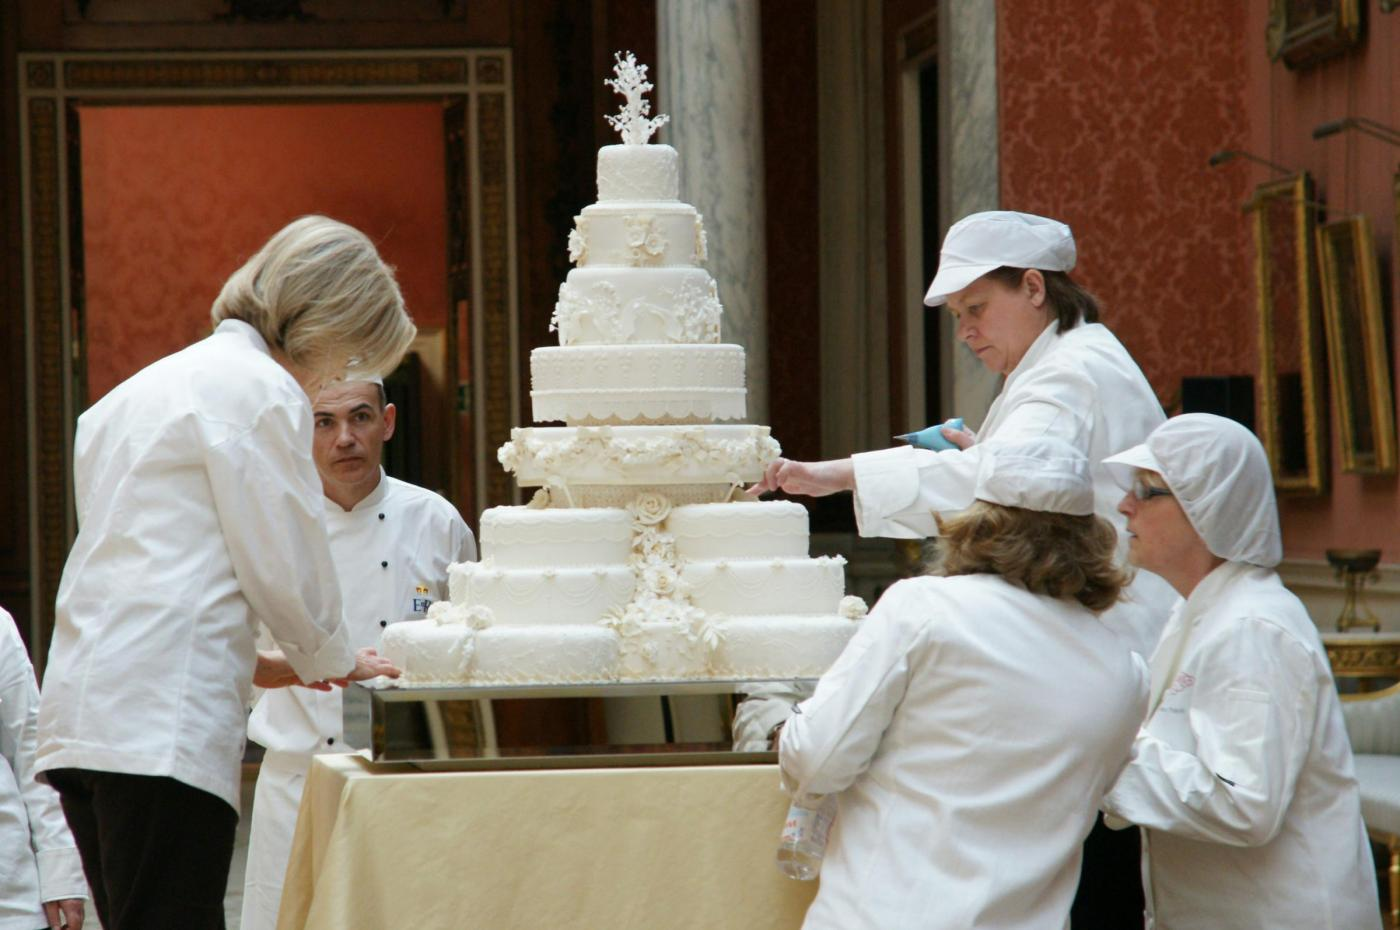 The Royal wedding cake prepared for reception in London, UK